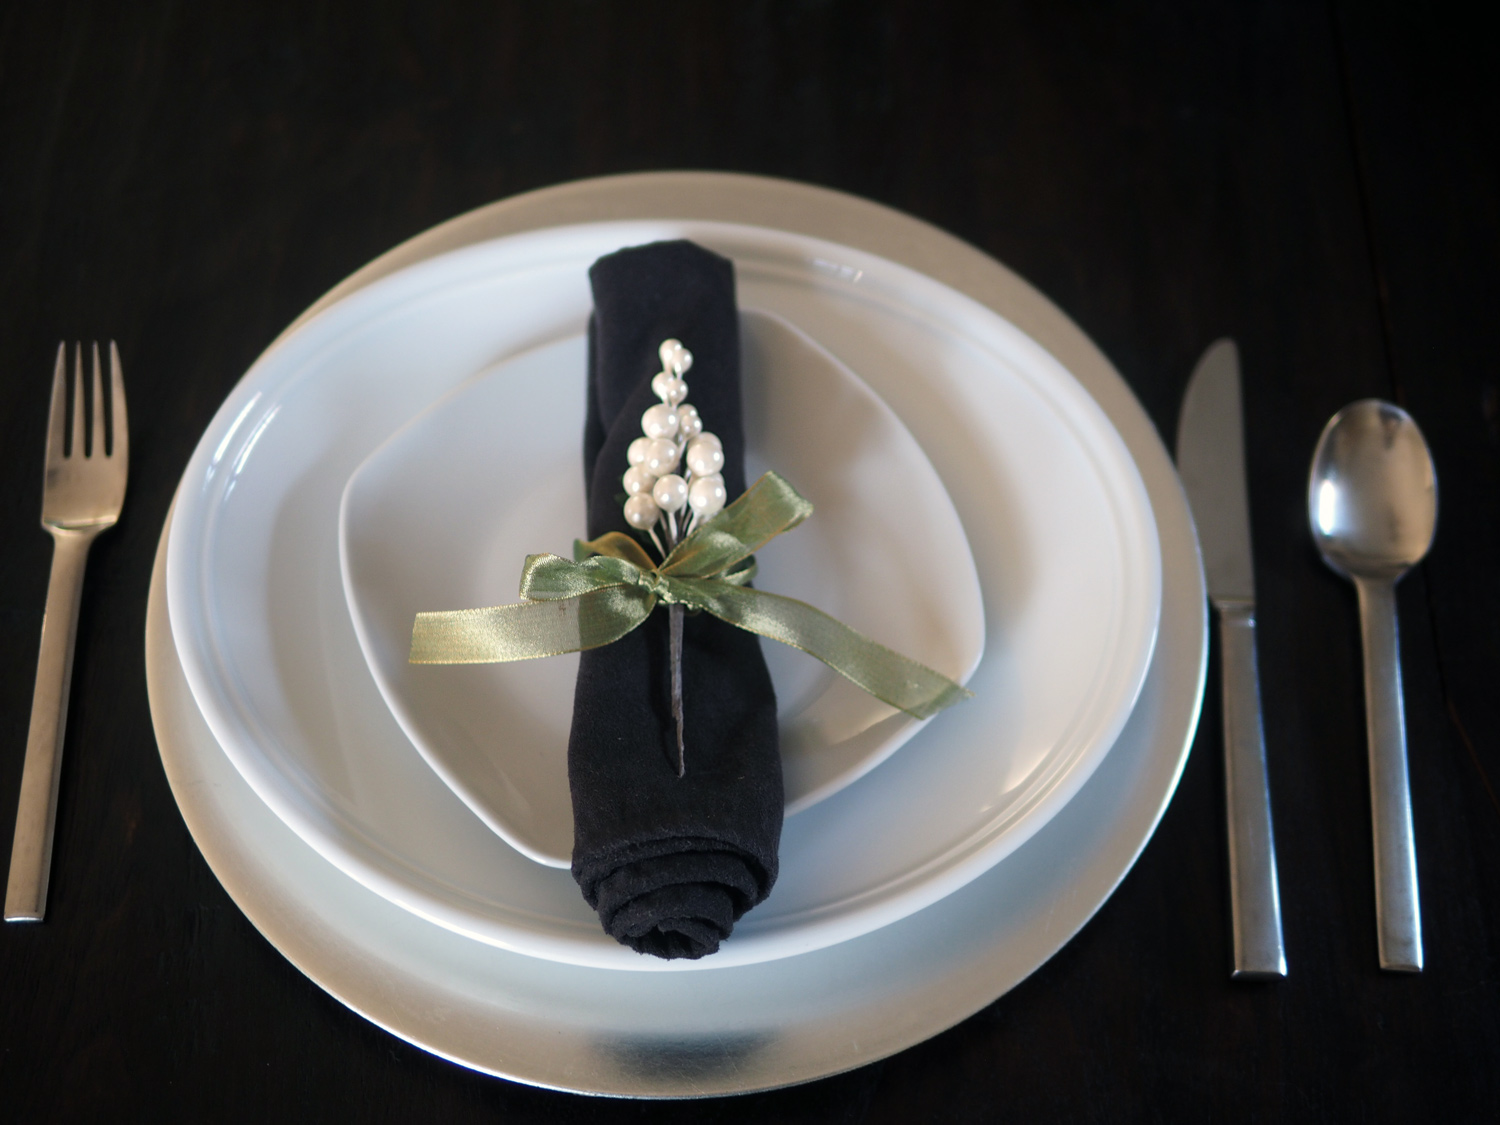 Once you have rolled the napkin up, tie a ribbon, knot it, place an ornament down and tie a bow. Place in the middle of the plate.